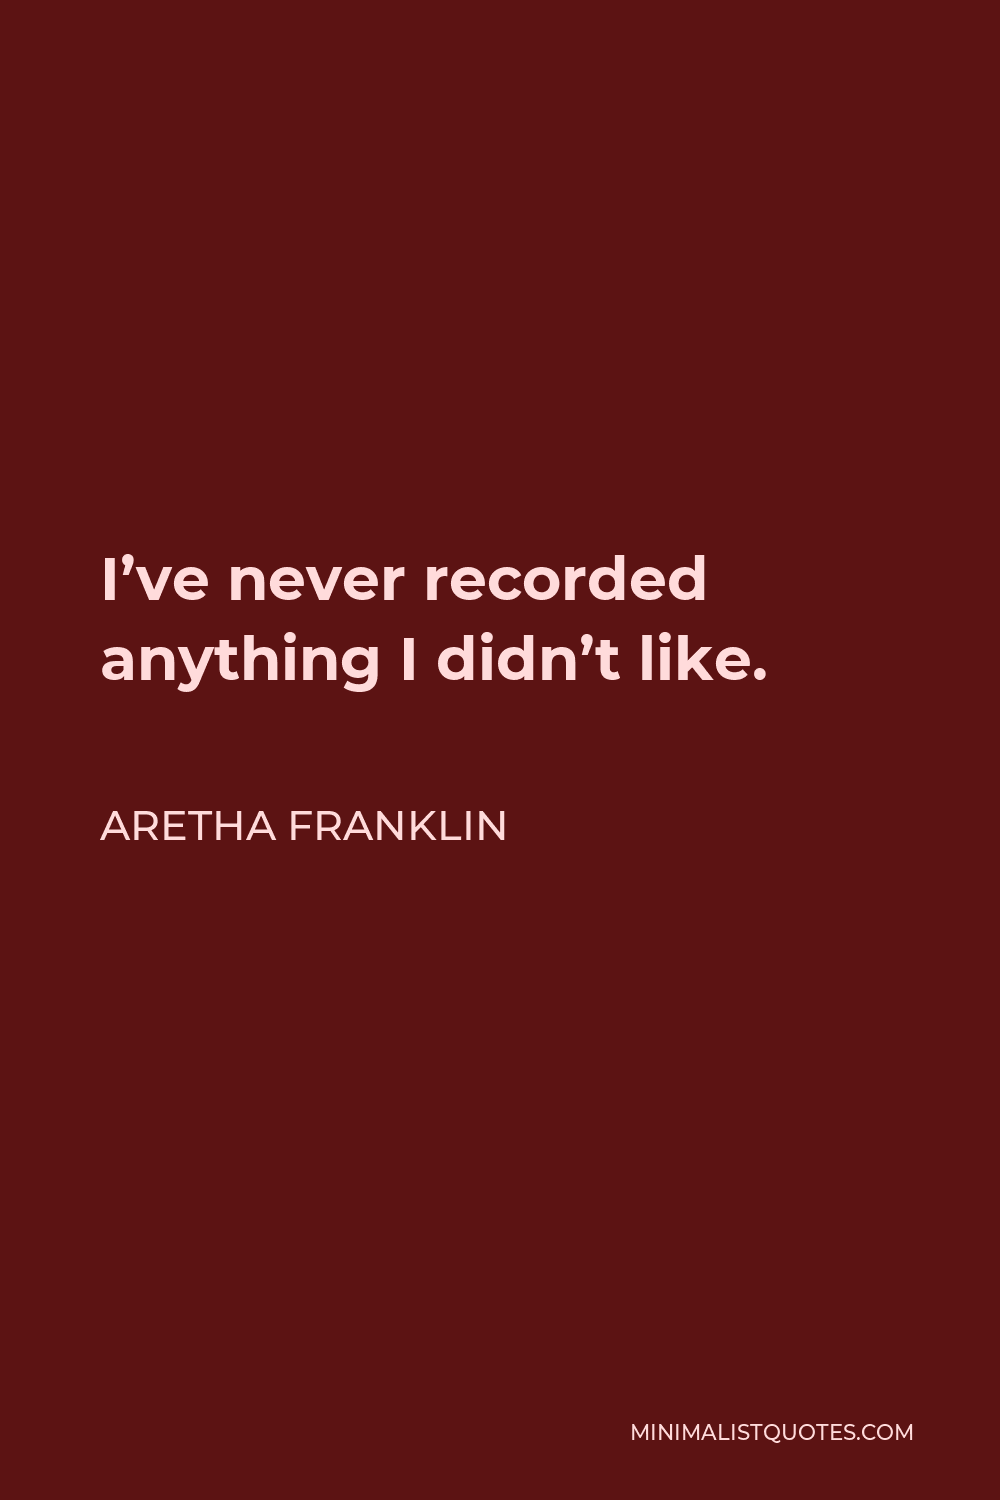 Aretha Franklin Quote - I've never recorded anything I didn't like.